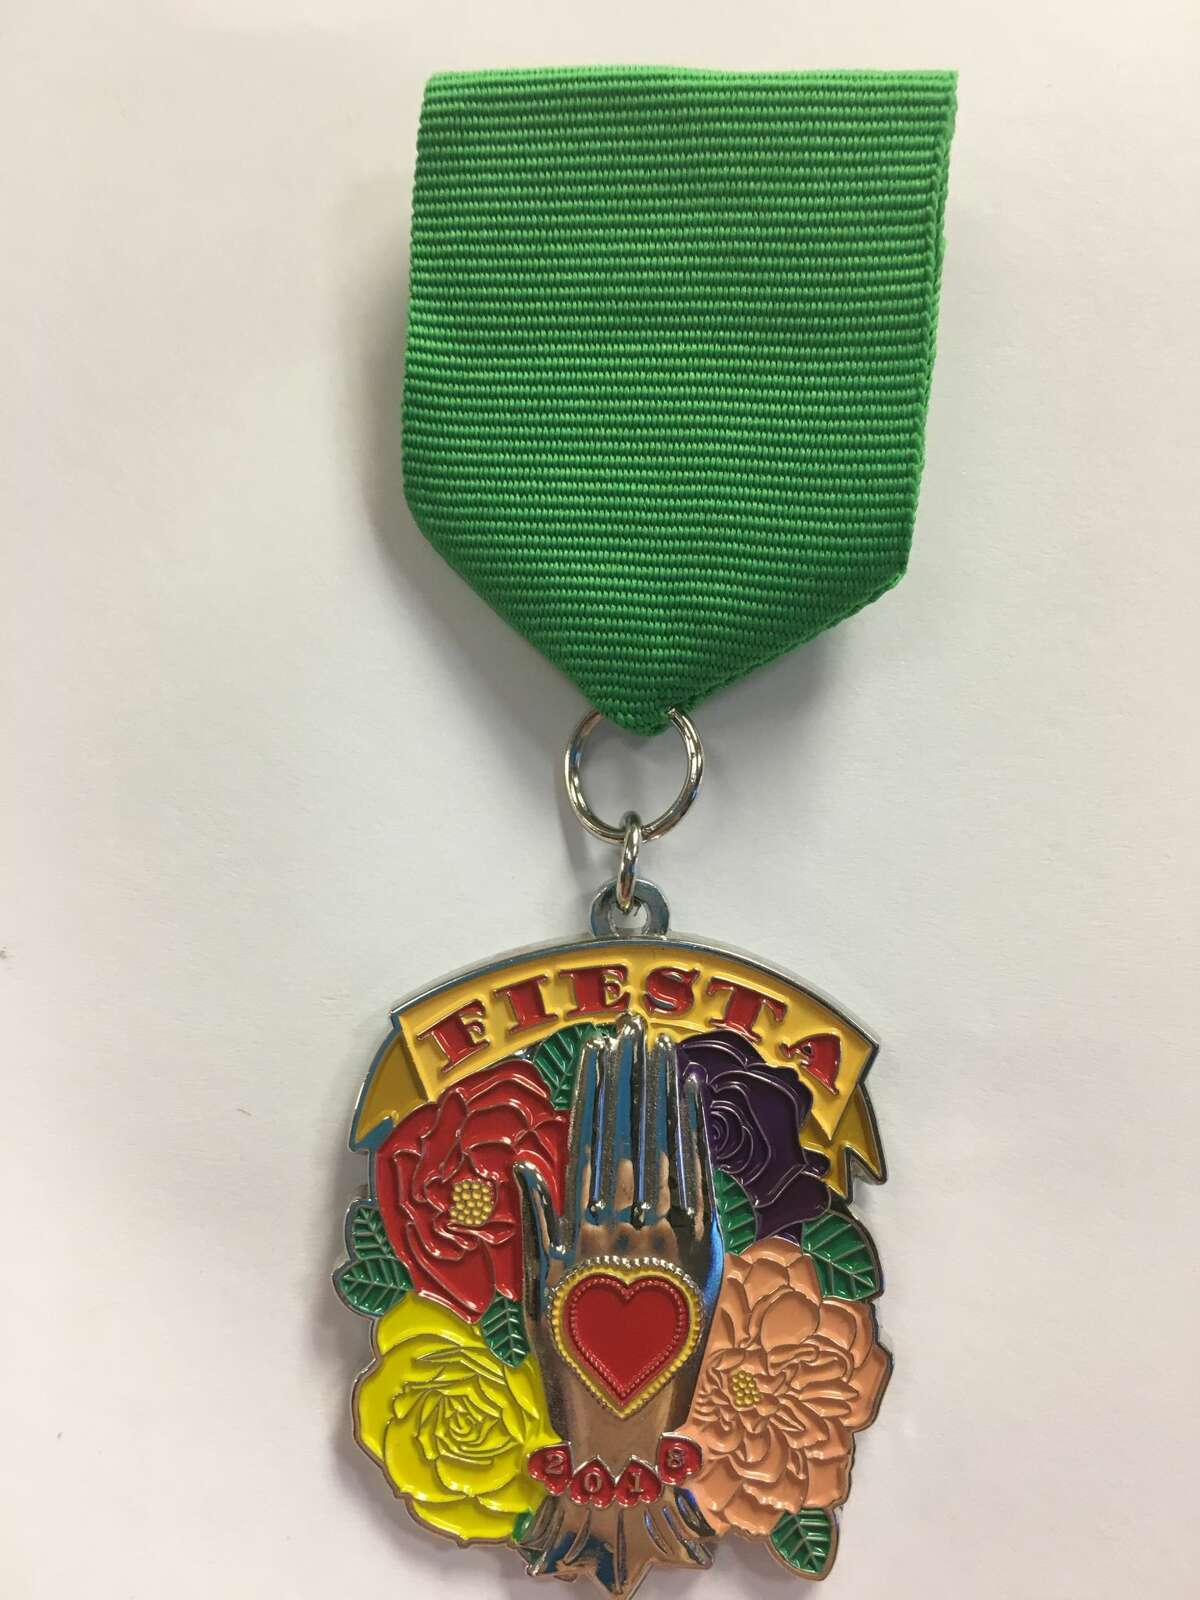 """Denise Ojeda's 2018 """"Heart in Hand Milagro"""" Fiesta Medal is inspired by her home, faith and culture. $10 at the SA Flavor website, with $1 of each sale benefitting Big Brothers and Big Sisters of South Texas."""